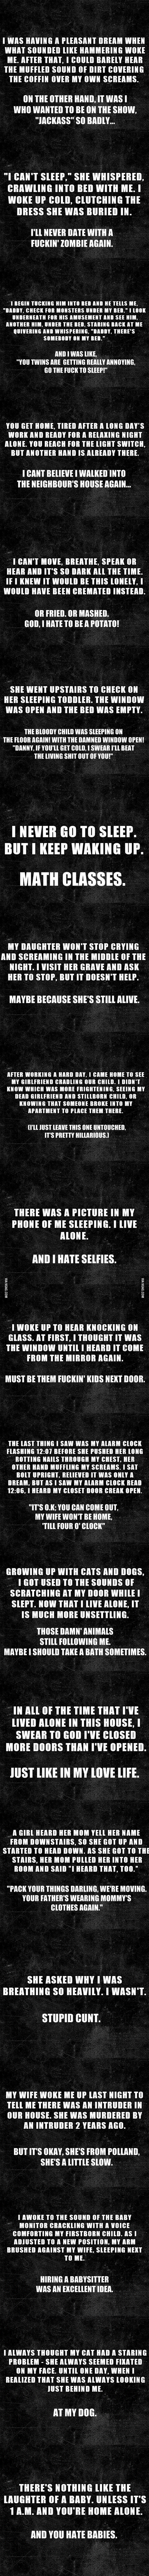 The famous short horror stories: now, ruined with only one sentence!